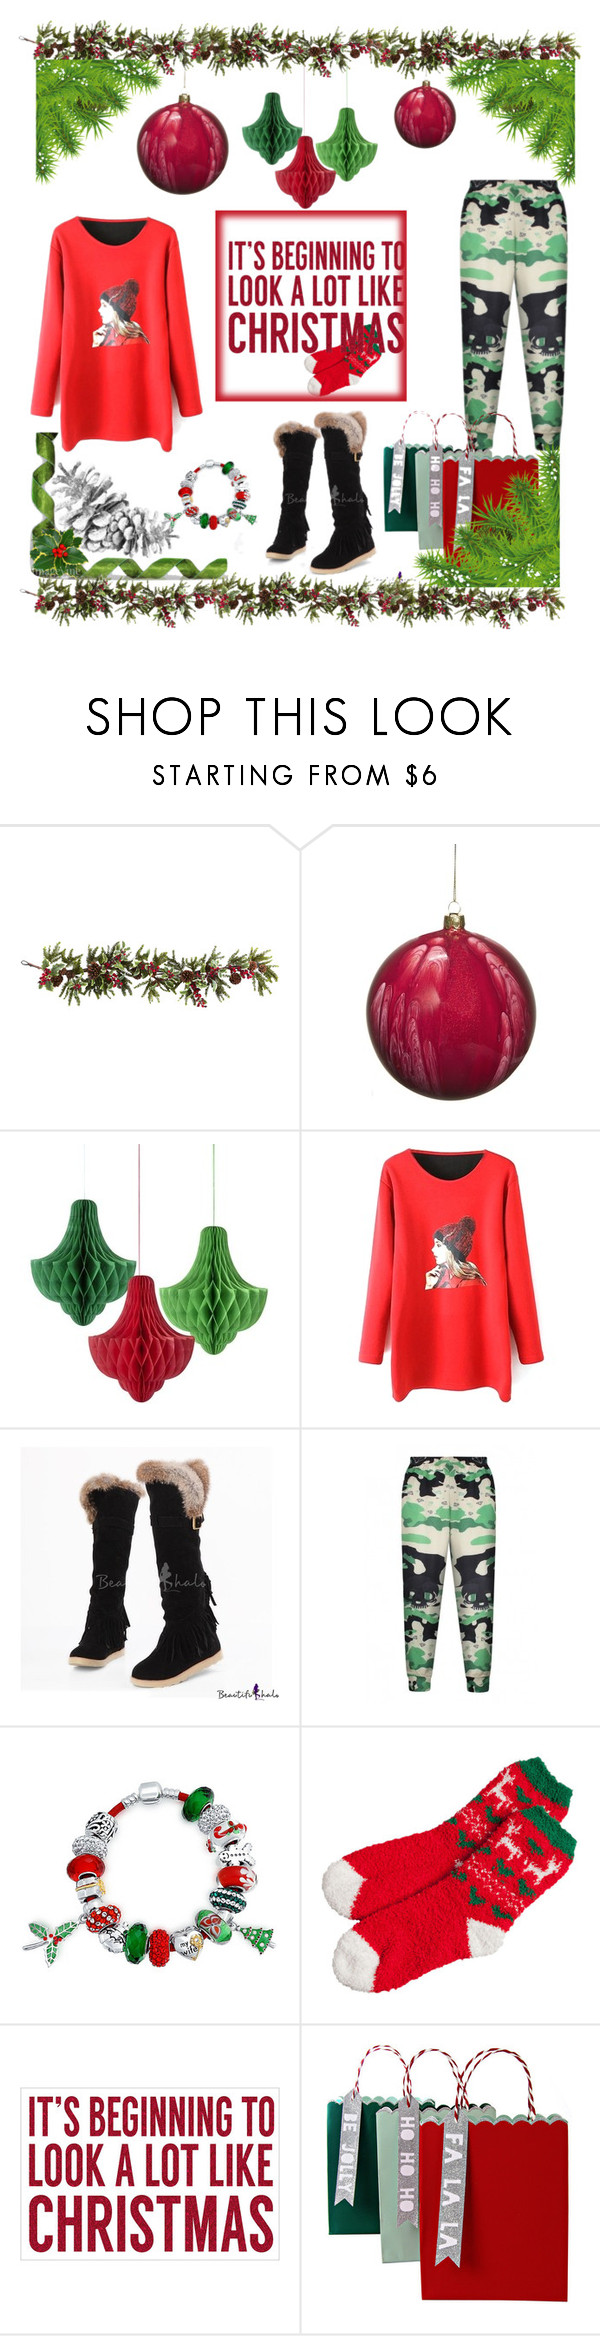 """""""beautifulhalo#31"""" by e-mina-87 ❤ liked on Polyvore featuring Nearly Natural, Jim Marvin, Bling Jewelry, Sixtrees, Meri Meri and bhalo"""